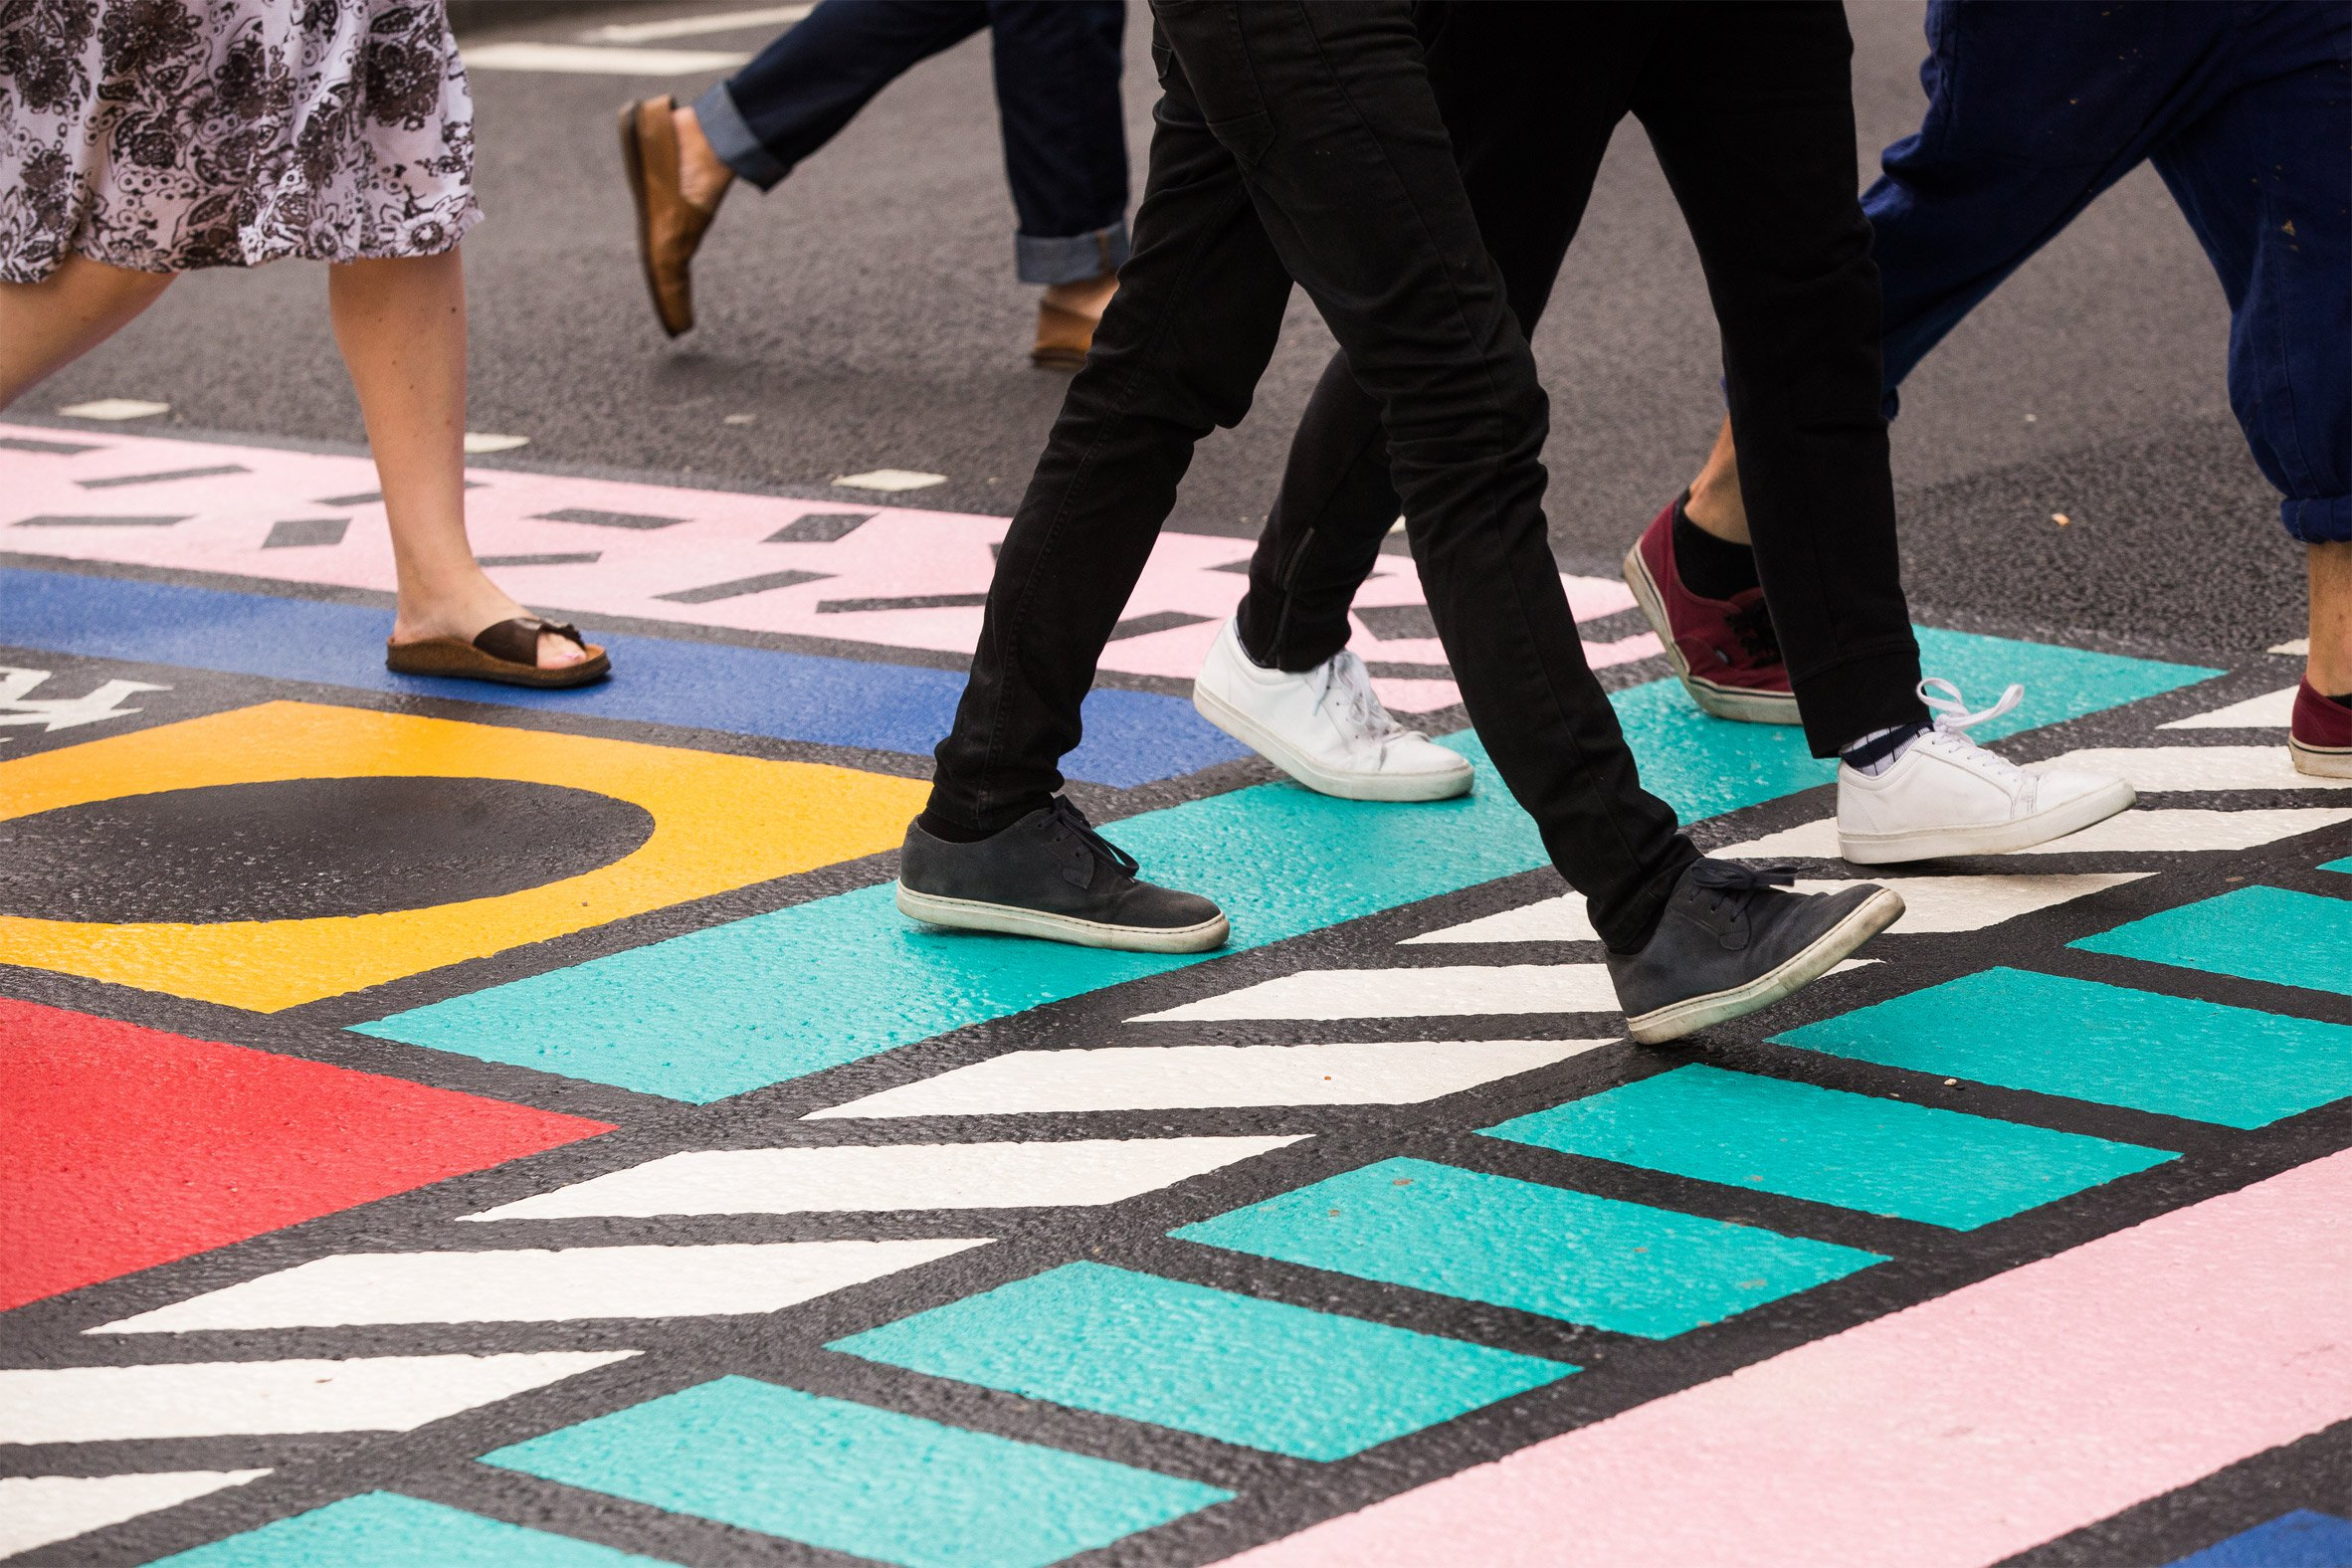 camille-walala-crossing-london-design-festival-graphic-design-southwark-street_dezeen_2364_col_3